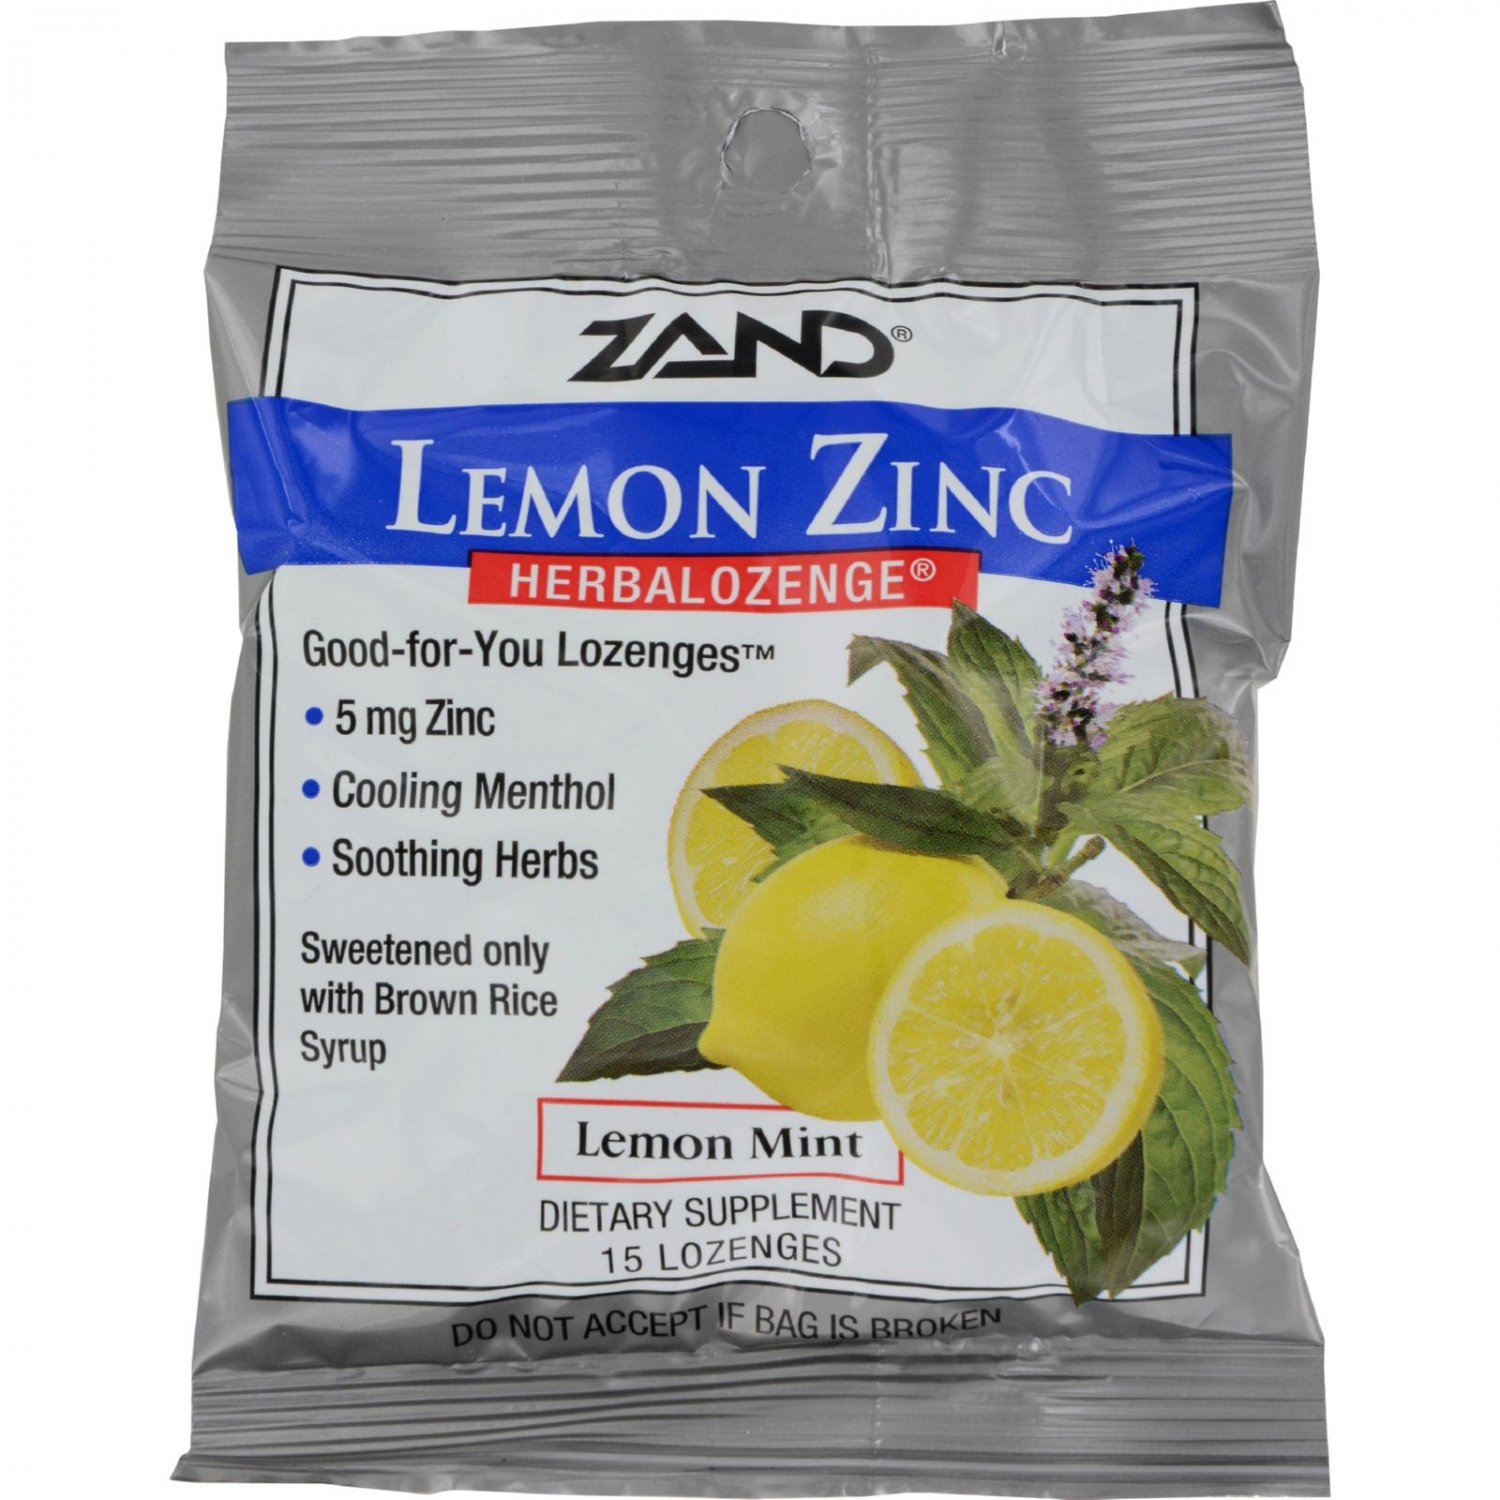 Zand HerbaLozenge Lemon Zinc Lemon - 15 Lozenges - Case of 12